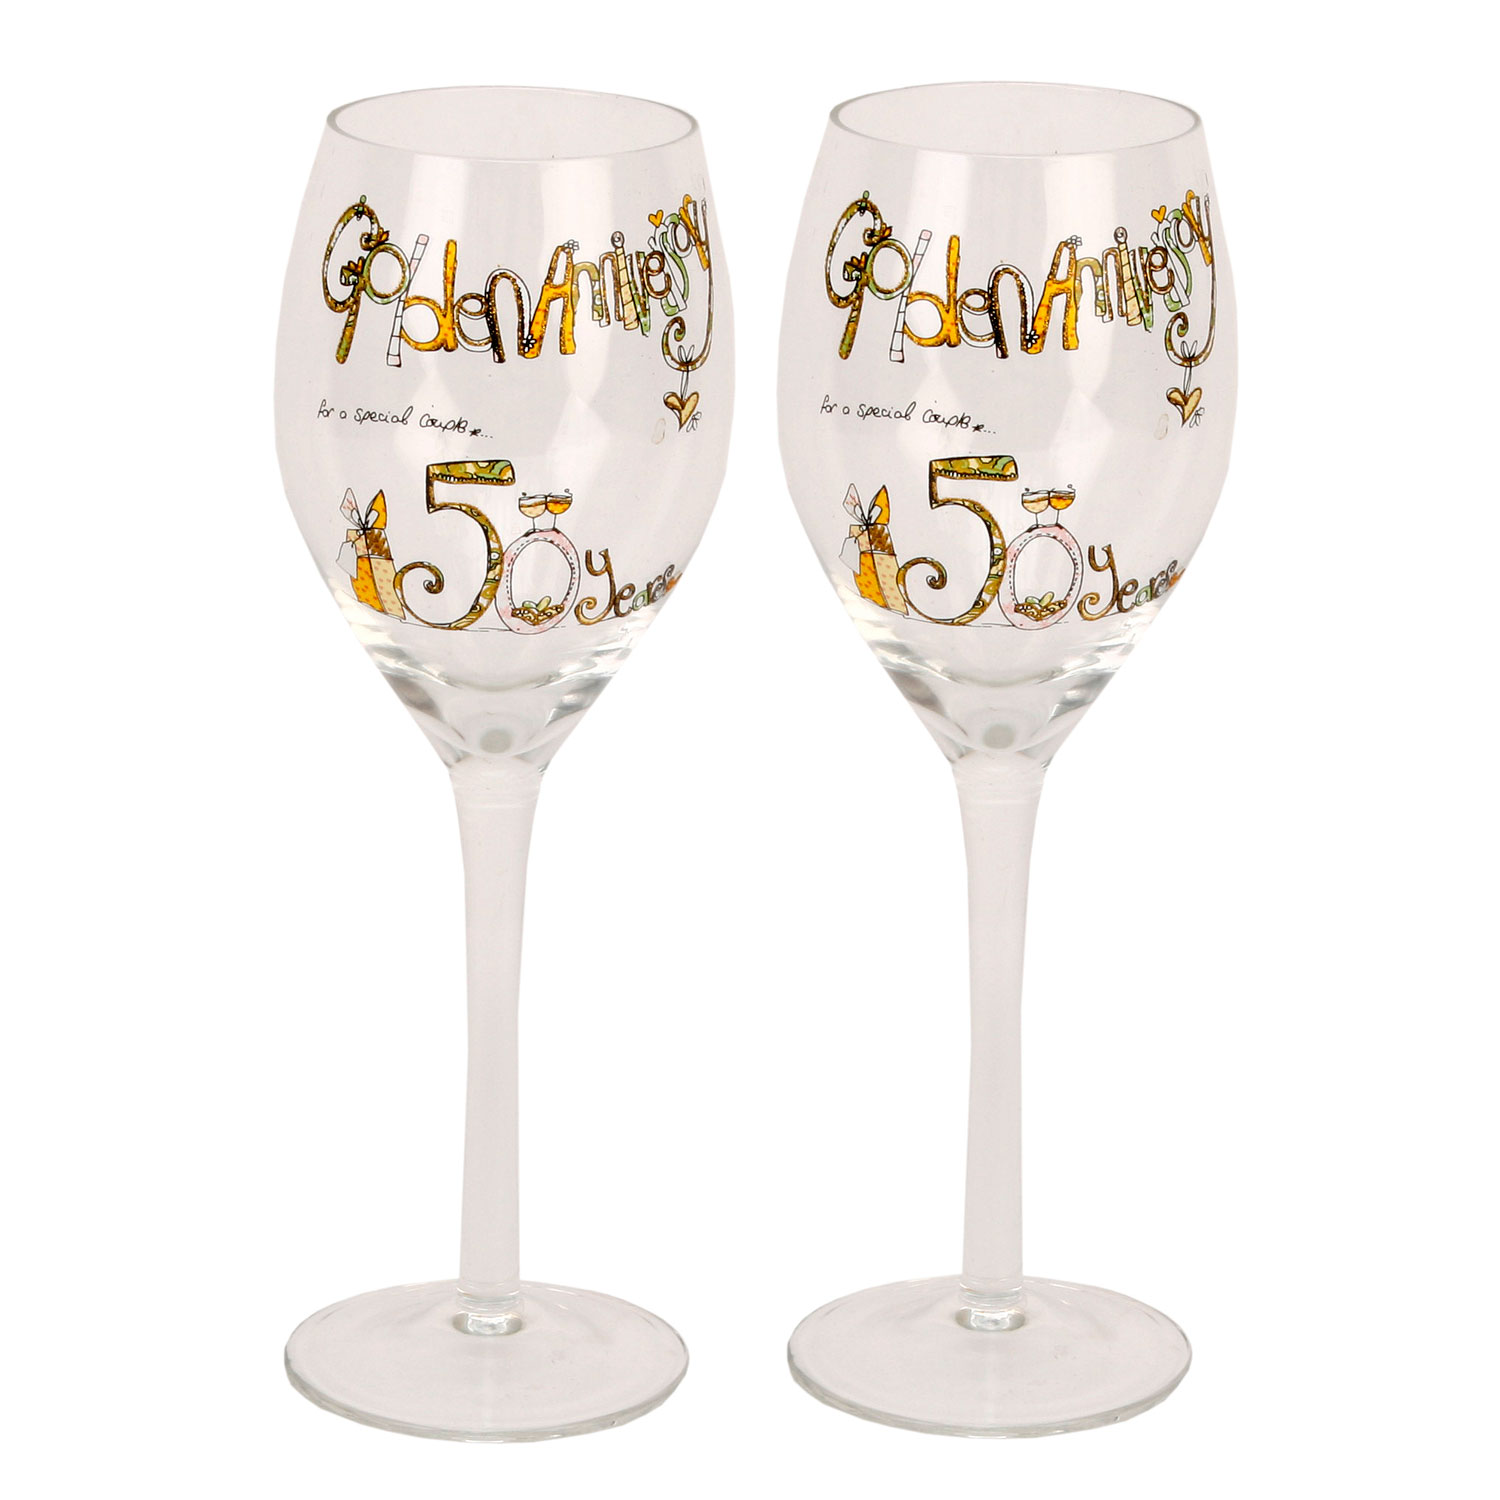 Tracey Russell Decorative Wine Glasses 50th Gold. Decorating Ideas For Church Events. Center Table Decor. Decorative Toilet Paper Holder. Book A Hotel Room For A Few Hours. Home Wall Decorations. Fall Decor Sale. Home Decor Wholesale Distributors. Wall Mirrors For Living Room